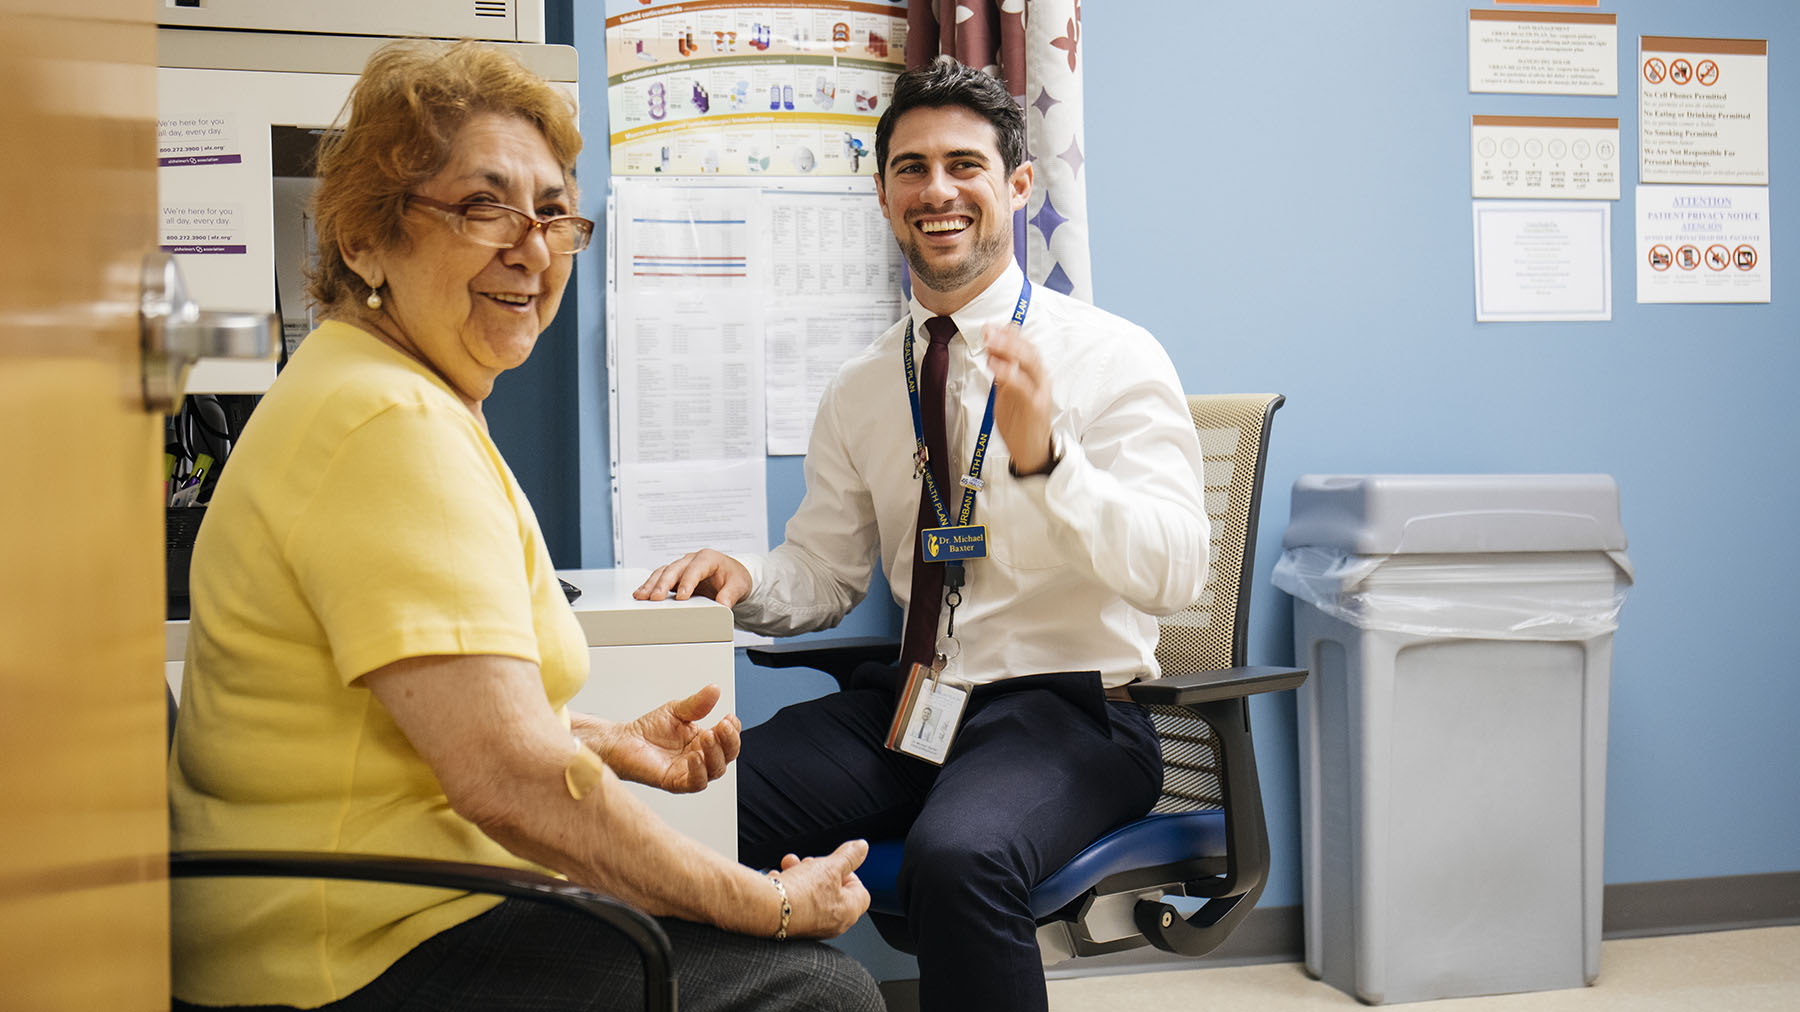 Center for Heathy Aging Patient Maria, and Clinical Pharmacist Michael V. Baxter meet for a consultation at Urban Health Plan, Inc. in Bronx, New York.